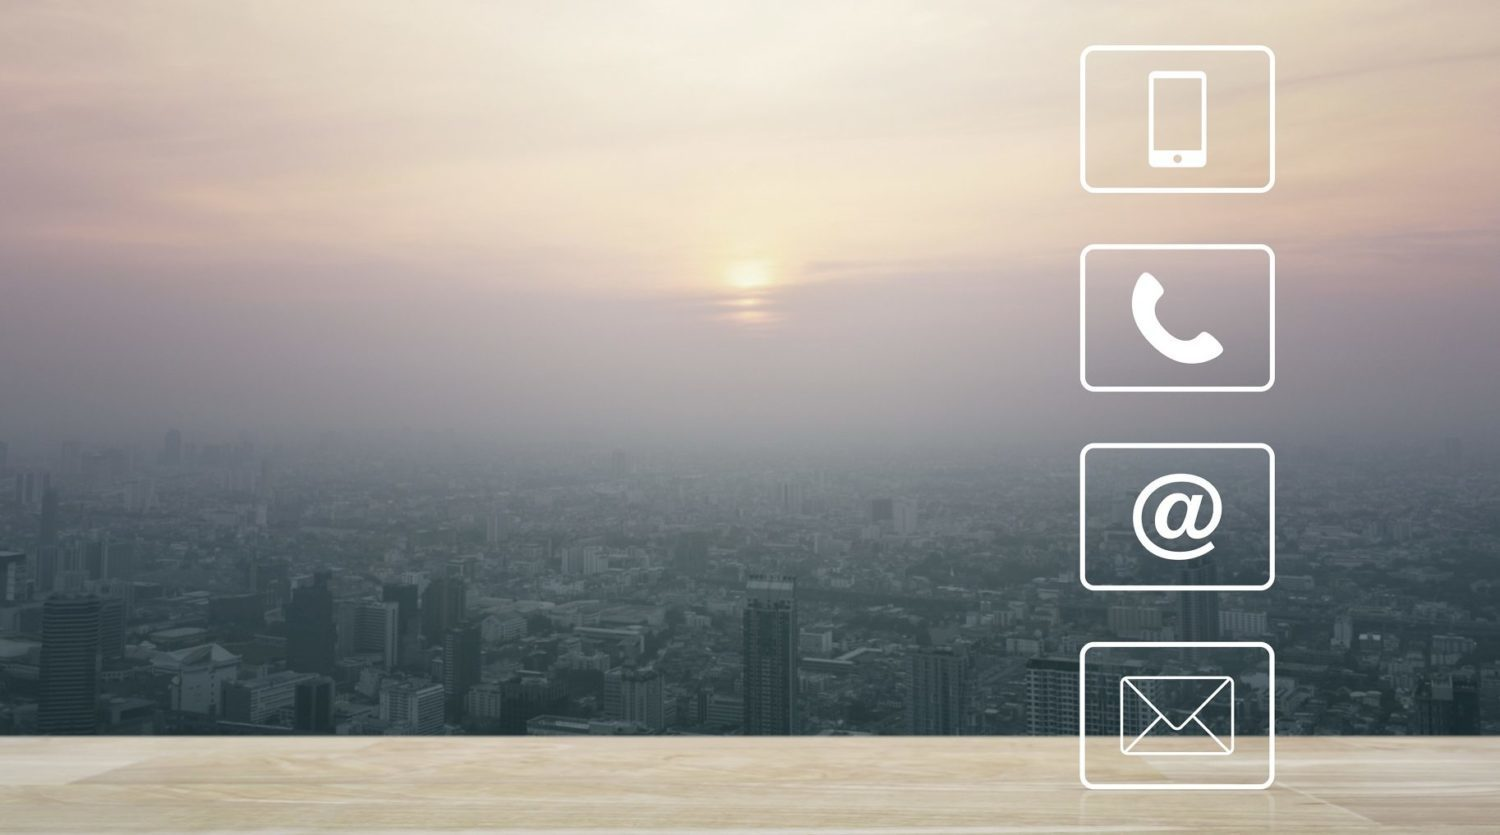 Telephone, mobile phone, address and email buttons on wooden table over aerial view of cityscape at sunset, vintage style, Business customer support and service concept